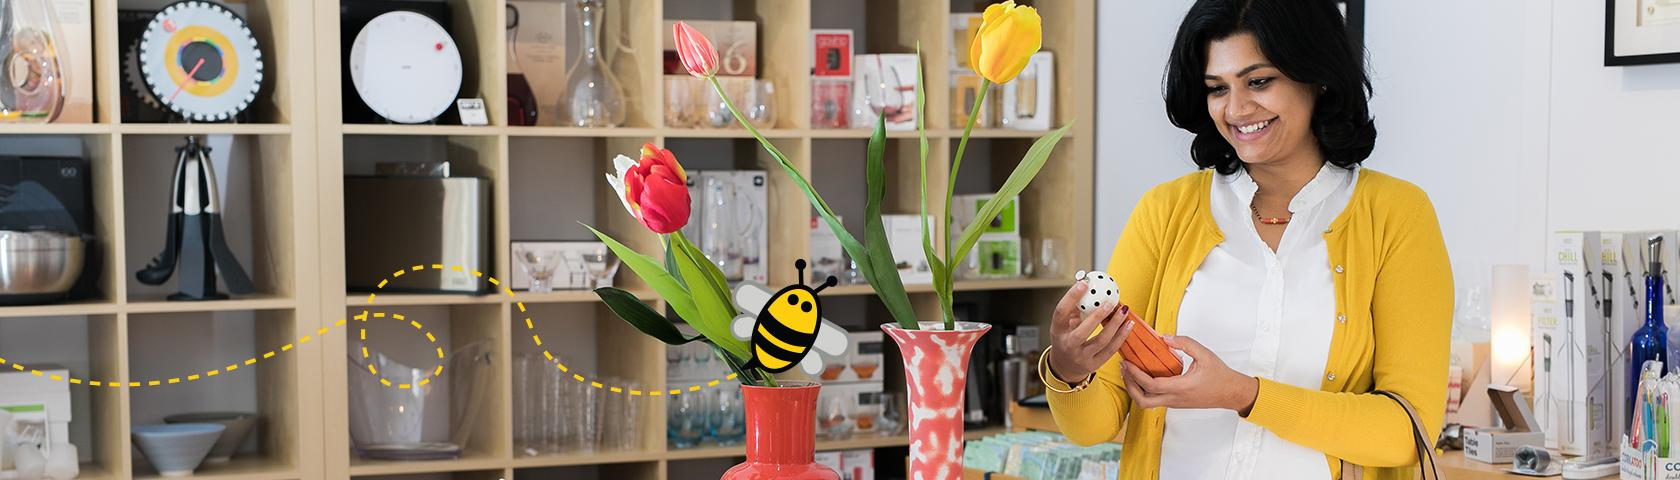 Woman looking at item with bee illustration on image.